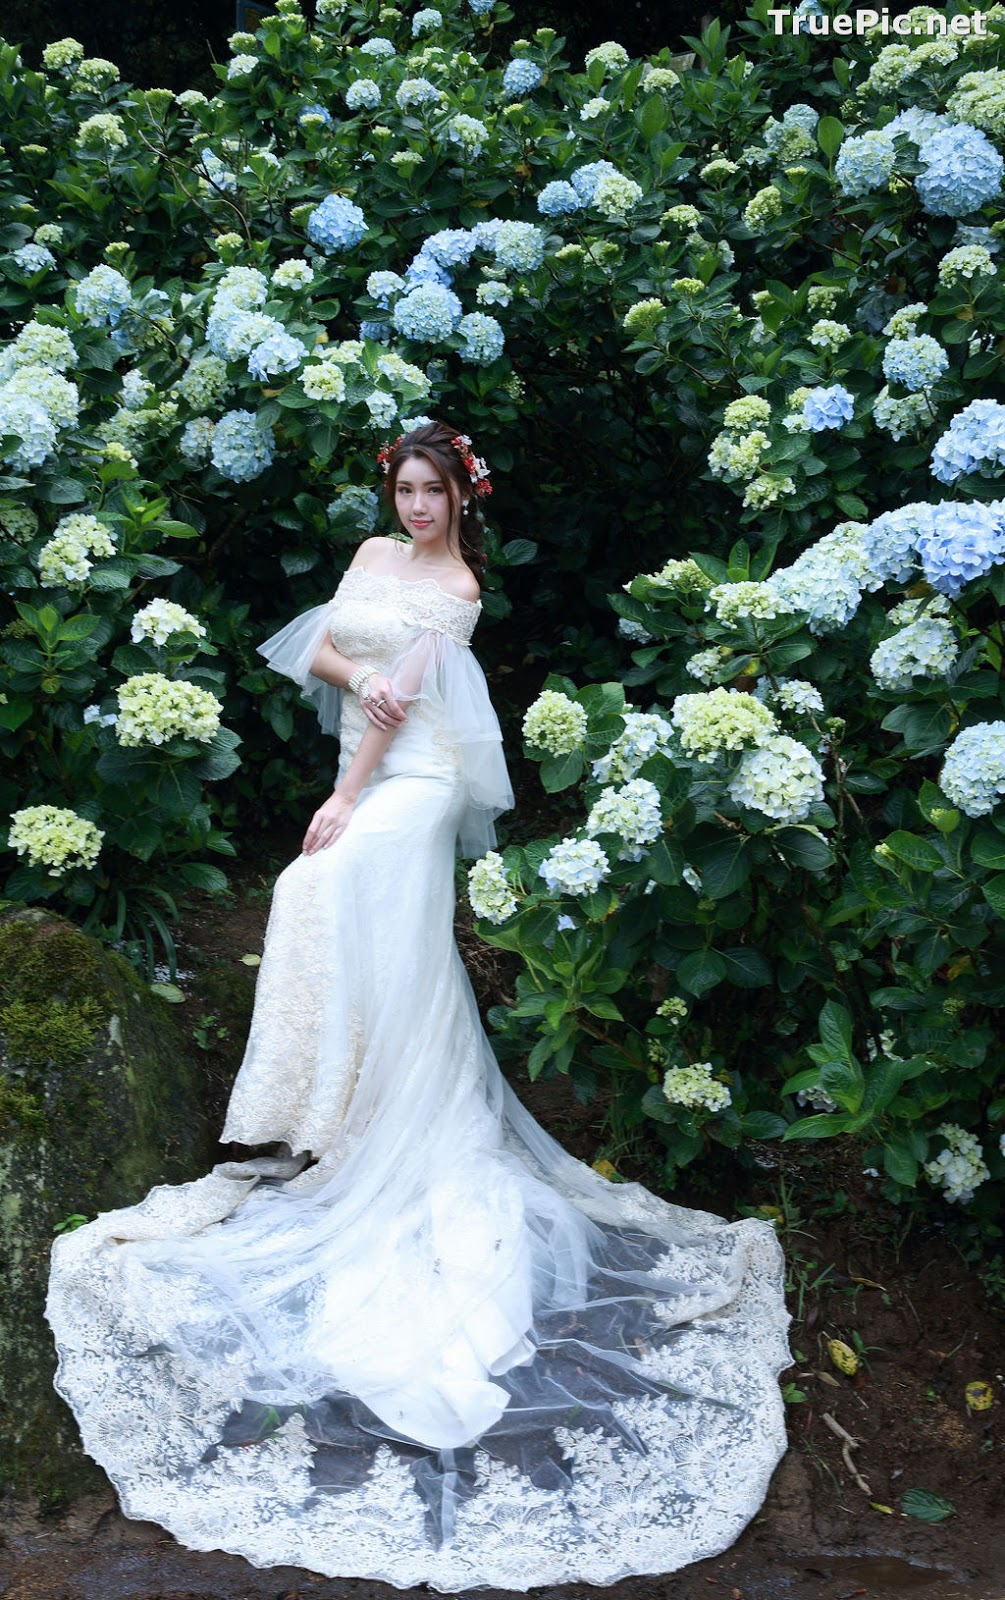 Image Taiwanese Model - 張倫甄 - Beautiful Bride and Hydrangea Flowers - TruePic.net - Picture-9